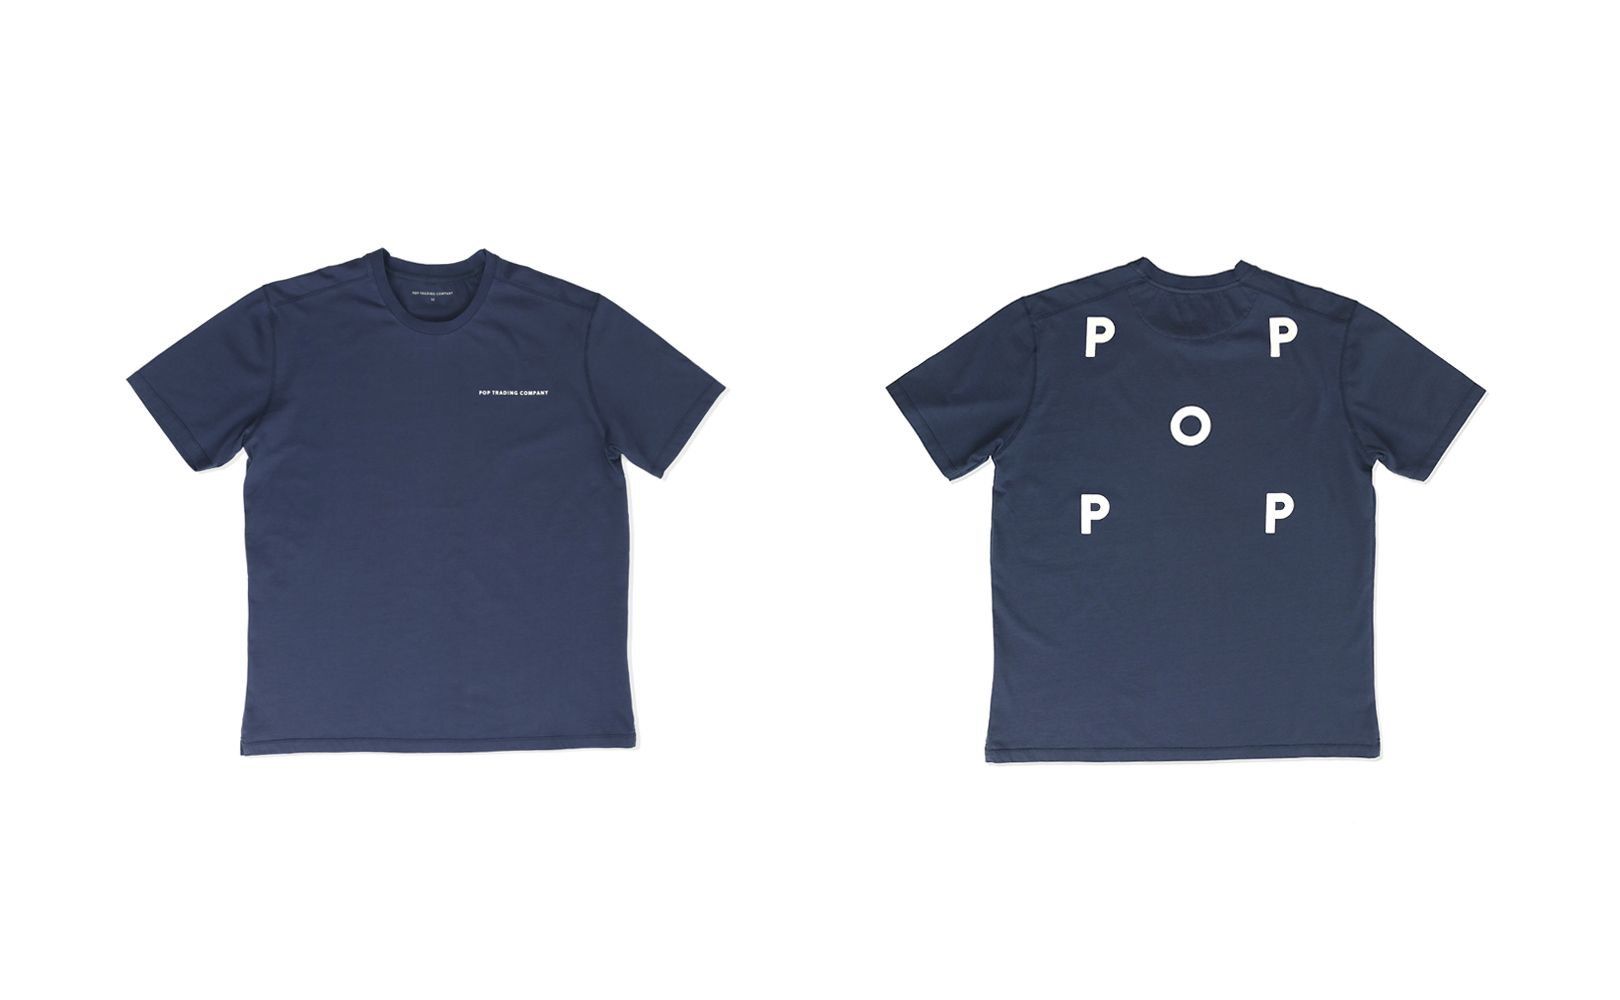 pop-trading-company-aw17-product-mr-porter-exclusive-2-t-shirt-navy-white